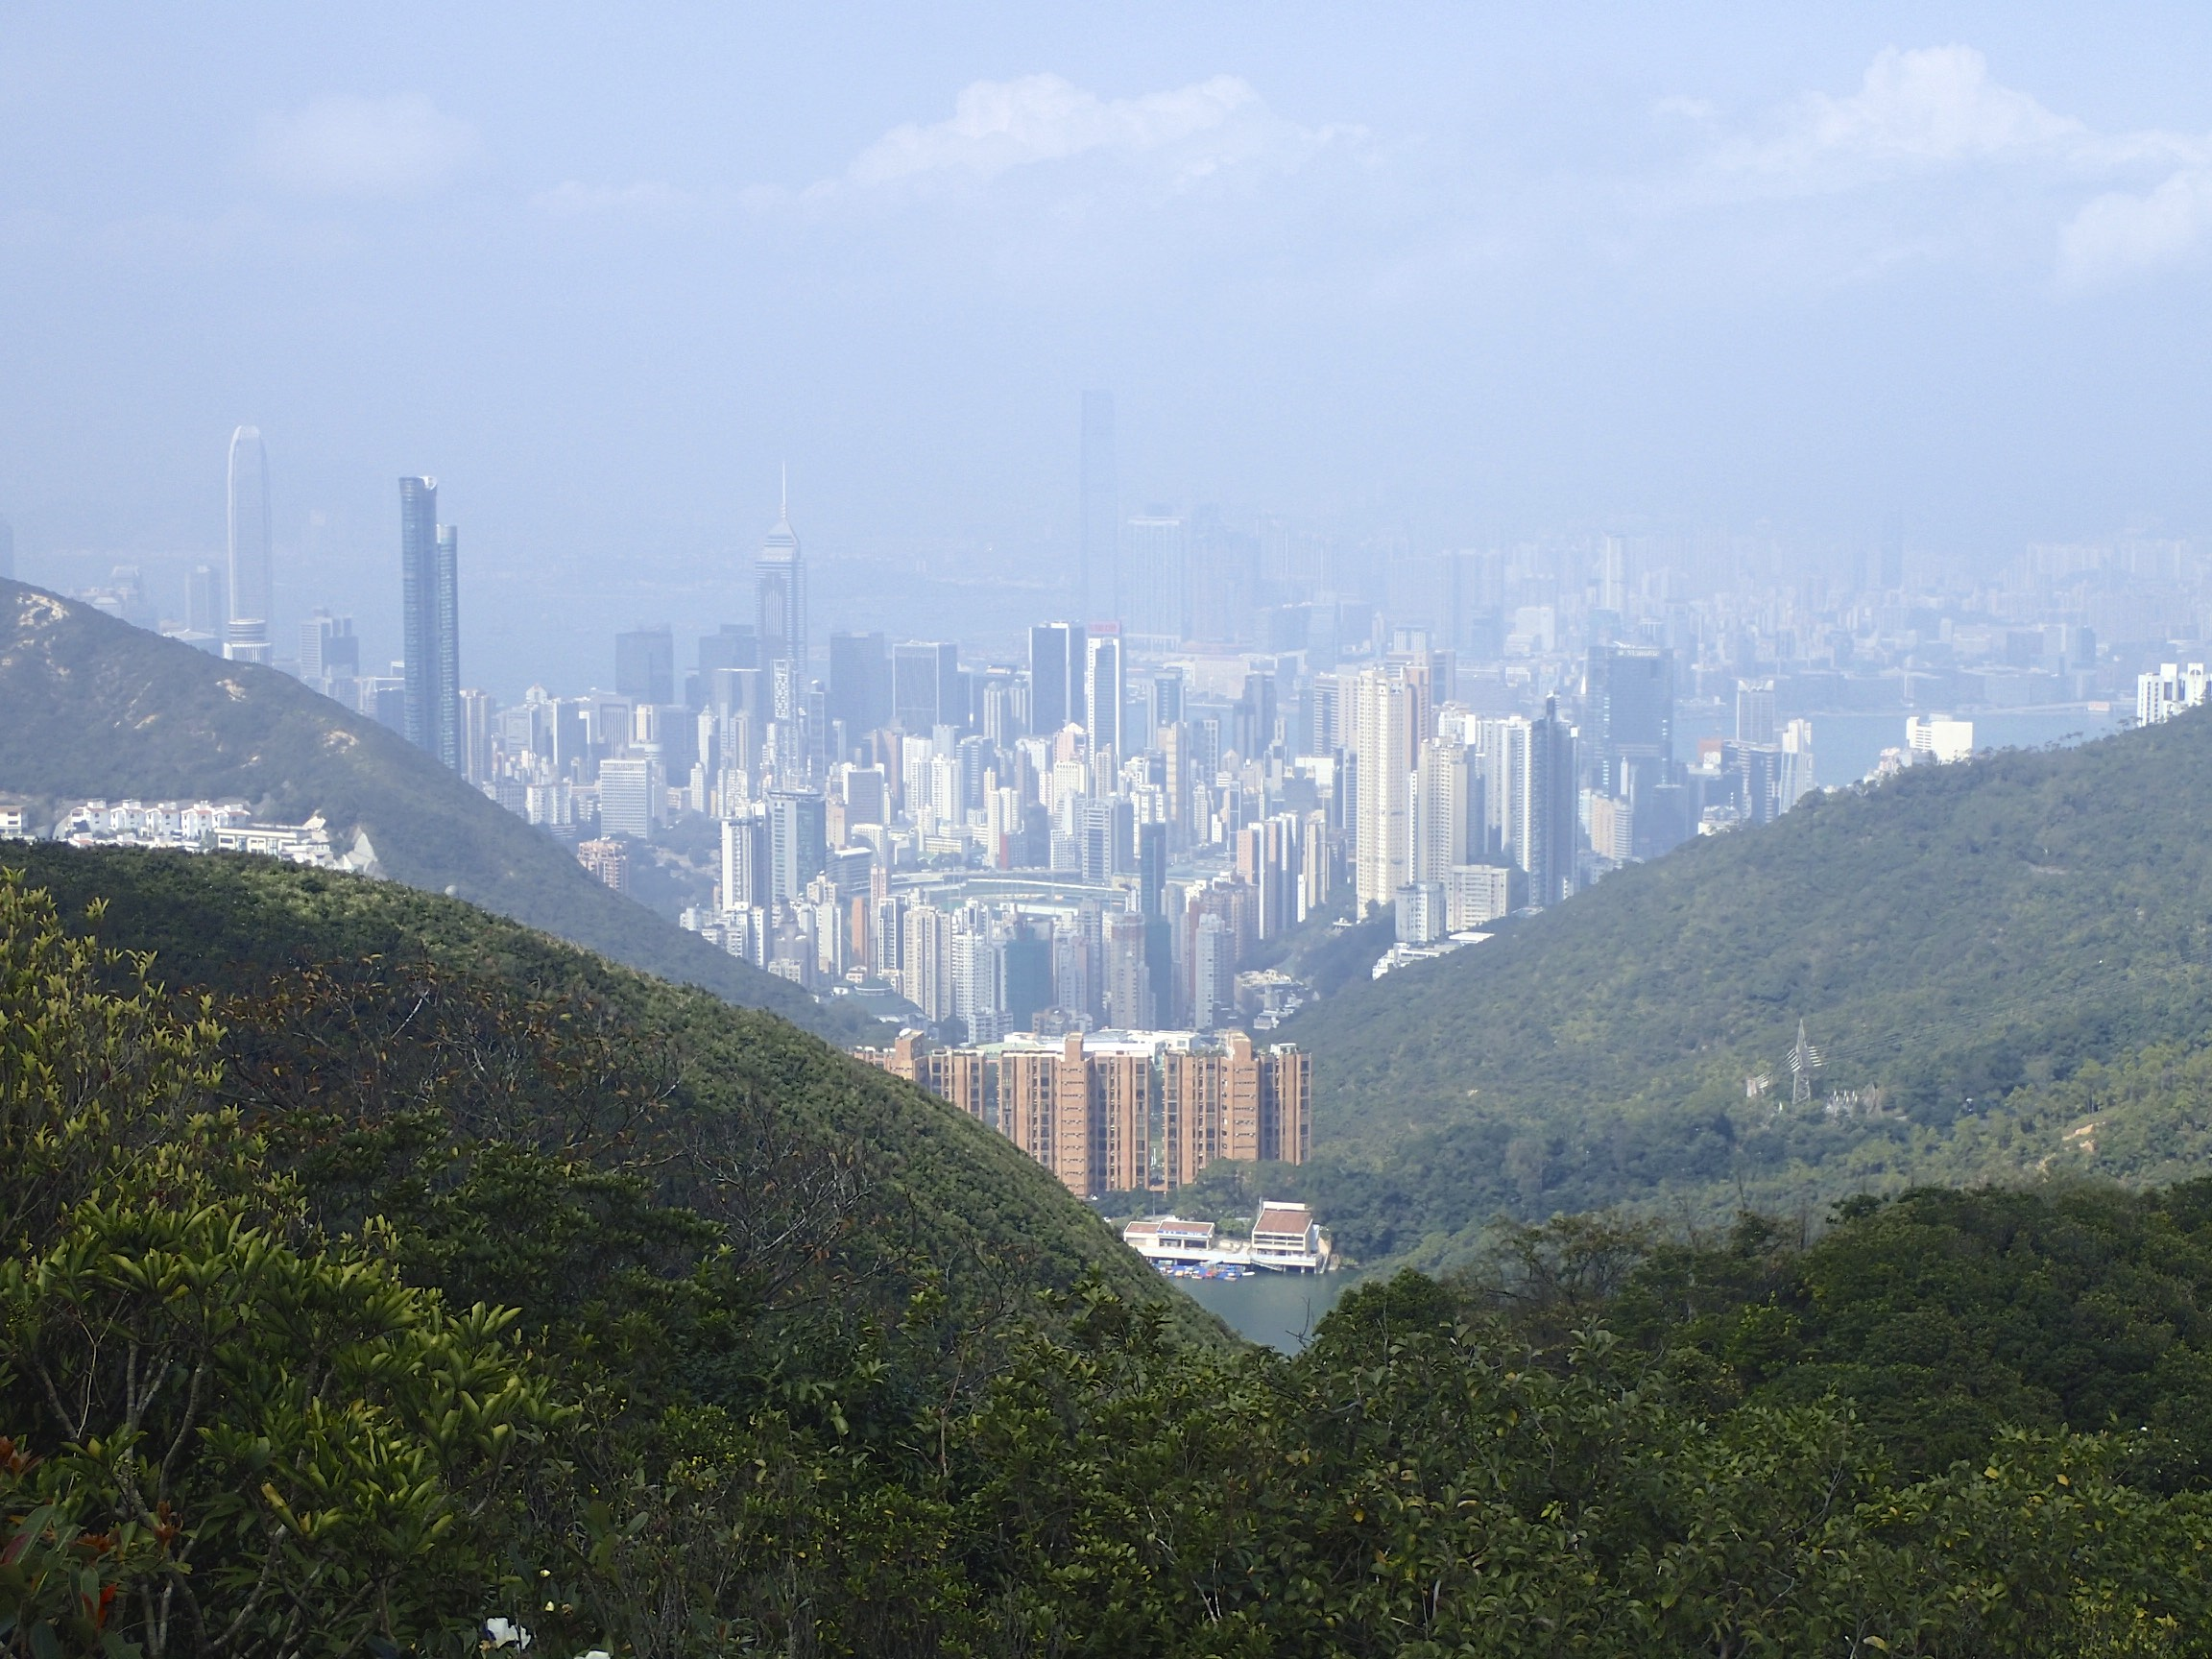 View before descending down into the buzzing Hong Kong